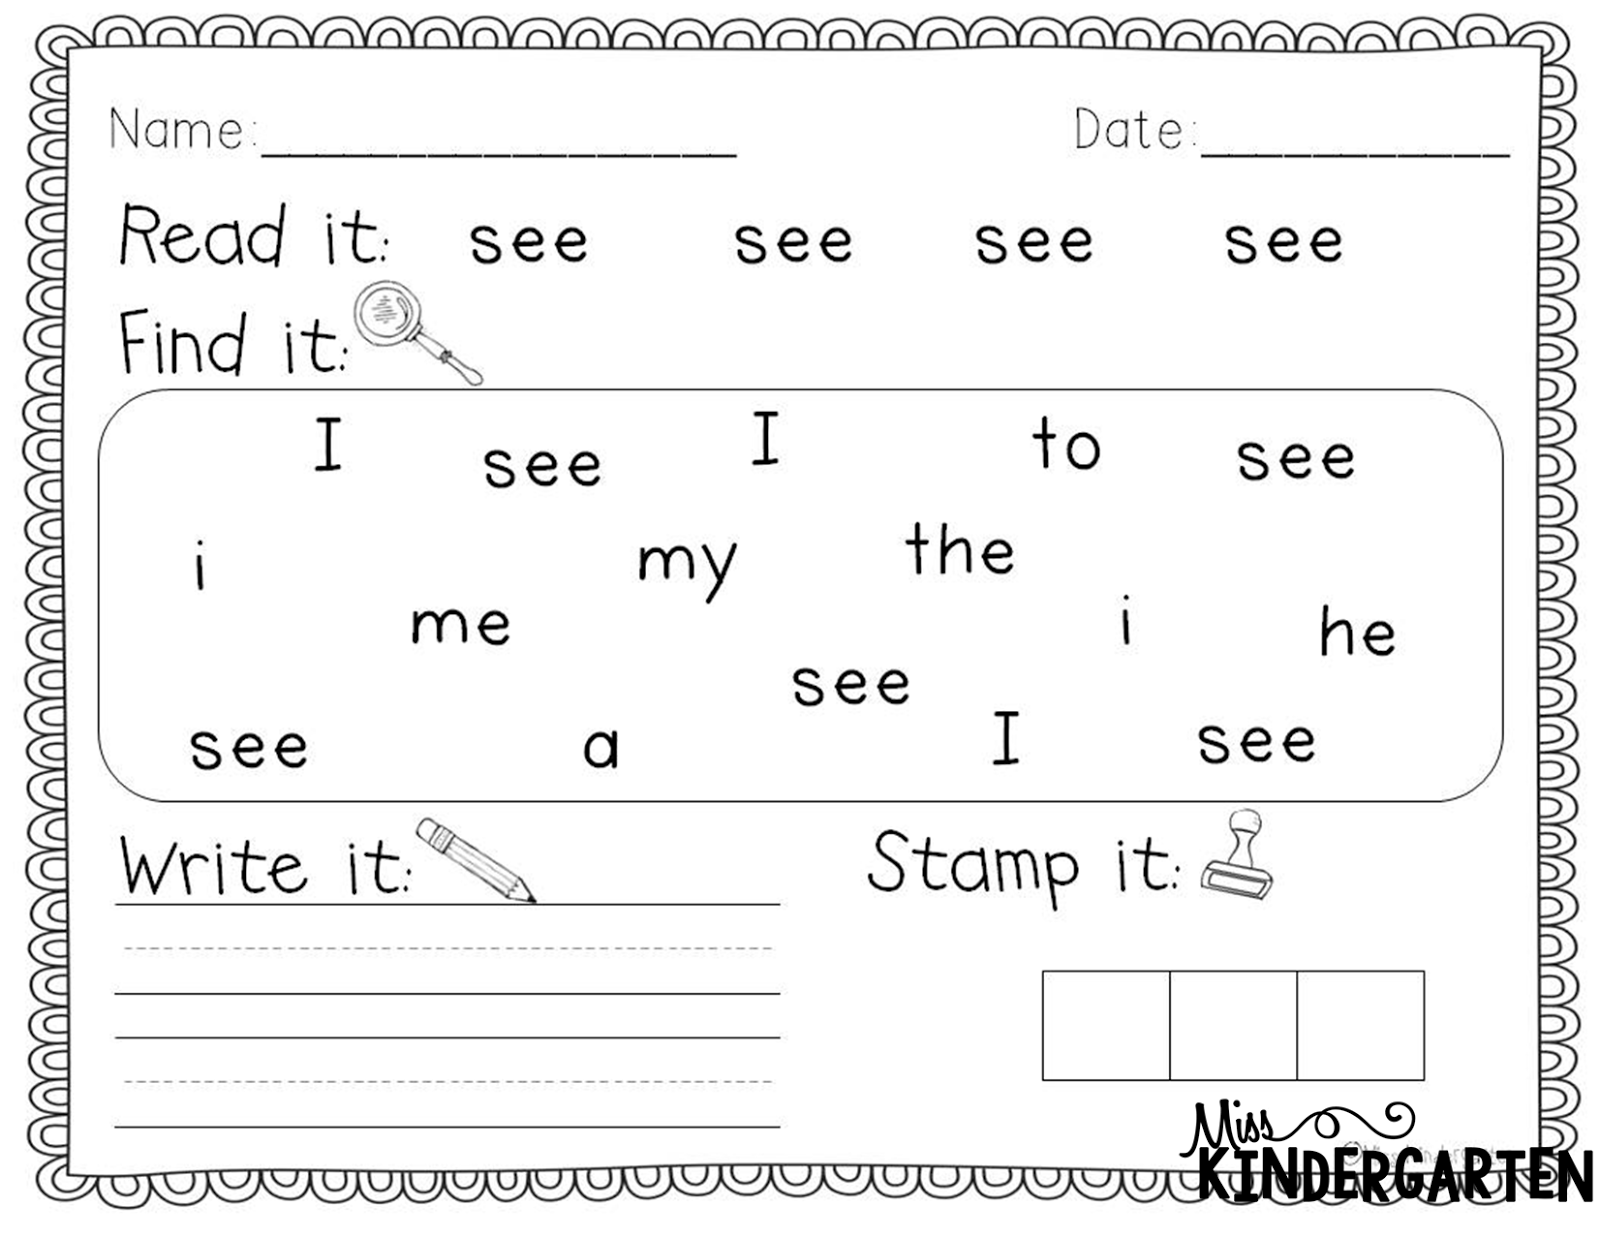 Worksheet Free Sight Words Printables sight word practice miss kindergarten httpwww teacherspayteachers comproductsight word